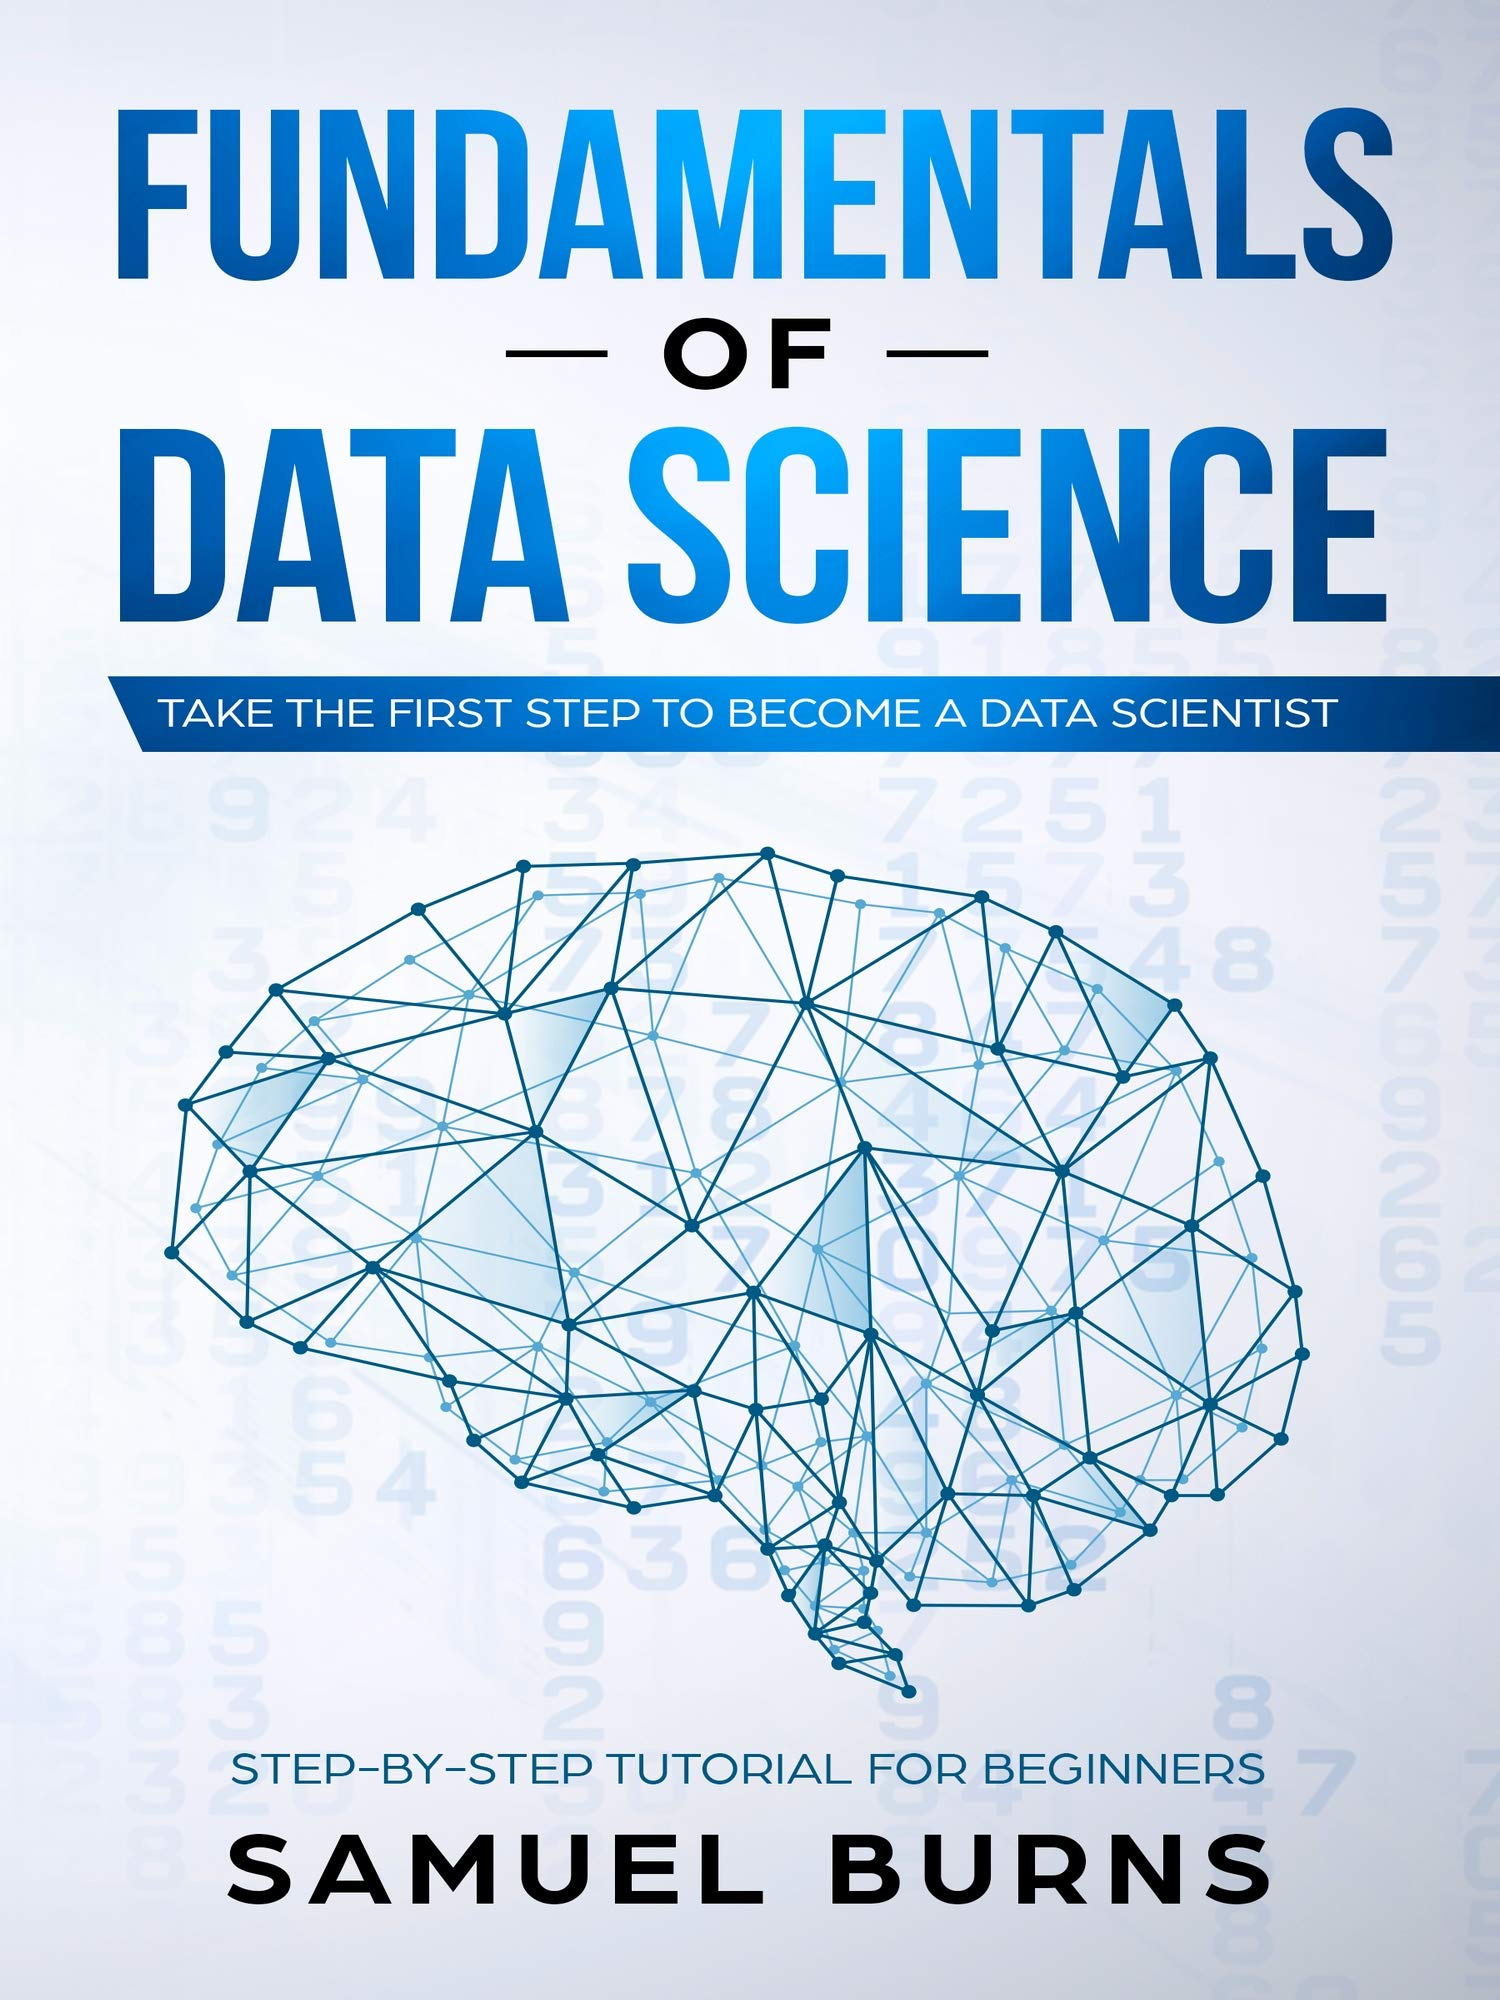 Image OfFundamentals Of Data Science: Take The First Step To Become A Data Scientist (Step-by-Step Tutorial For Beginners) (Englis...